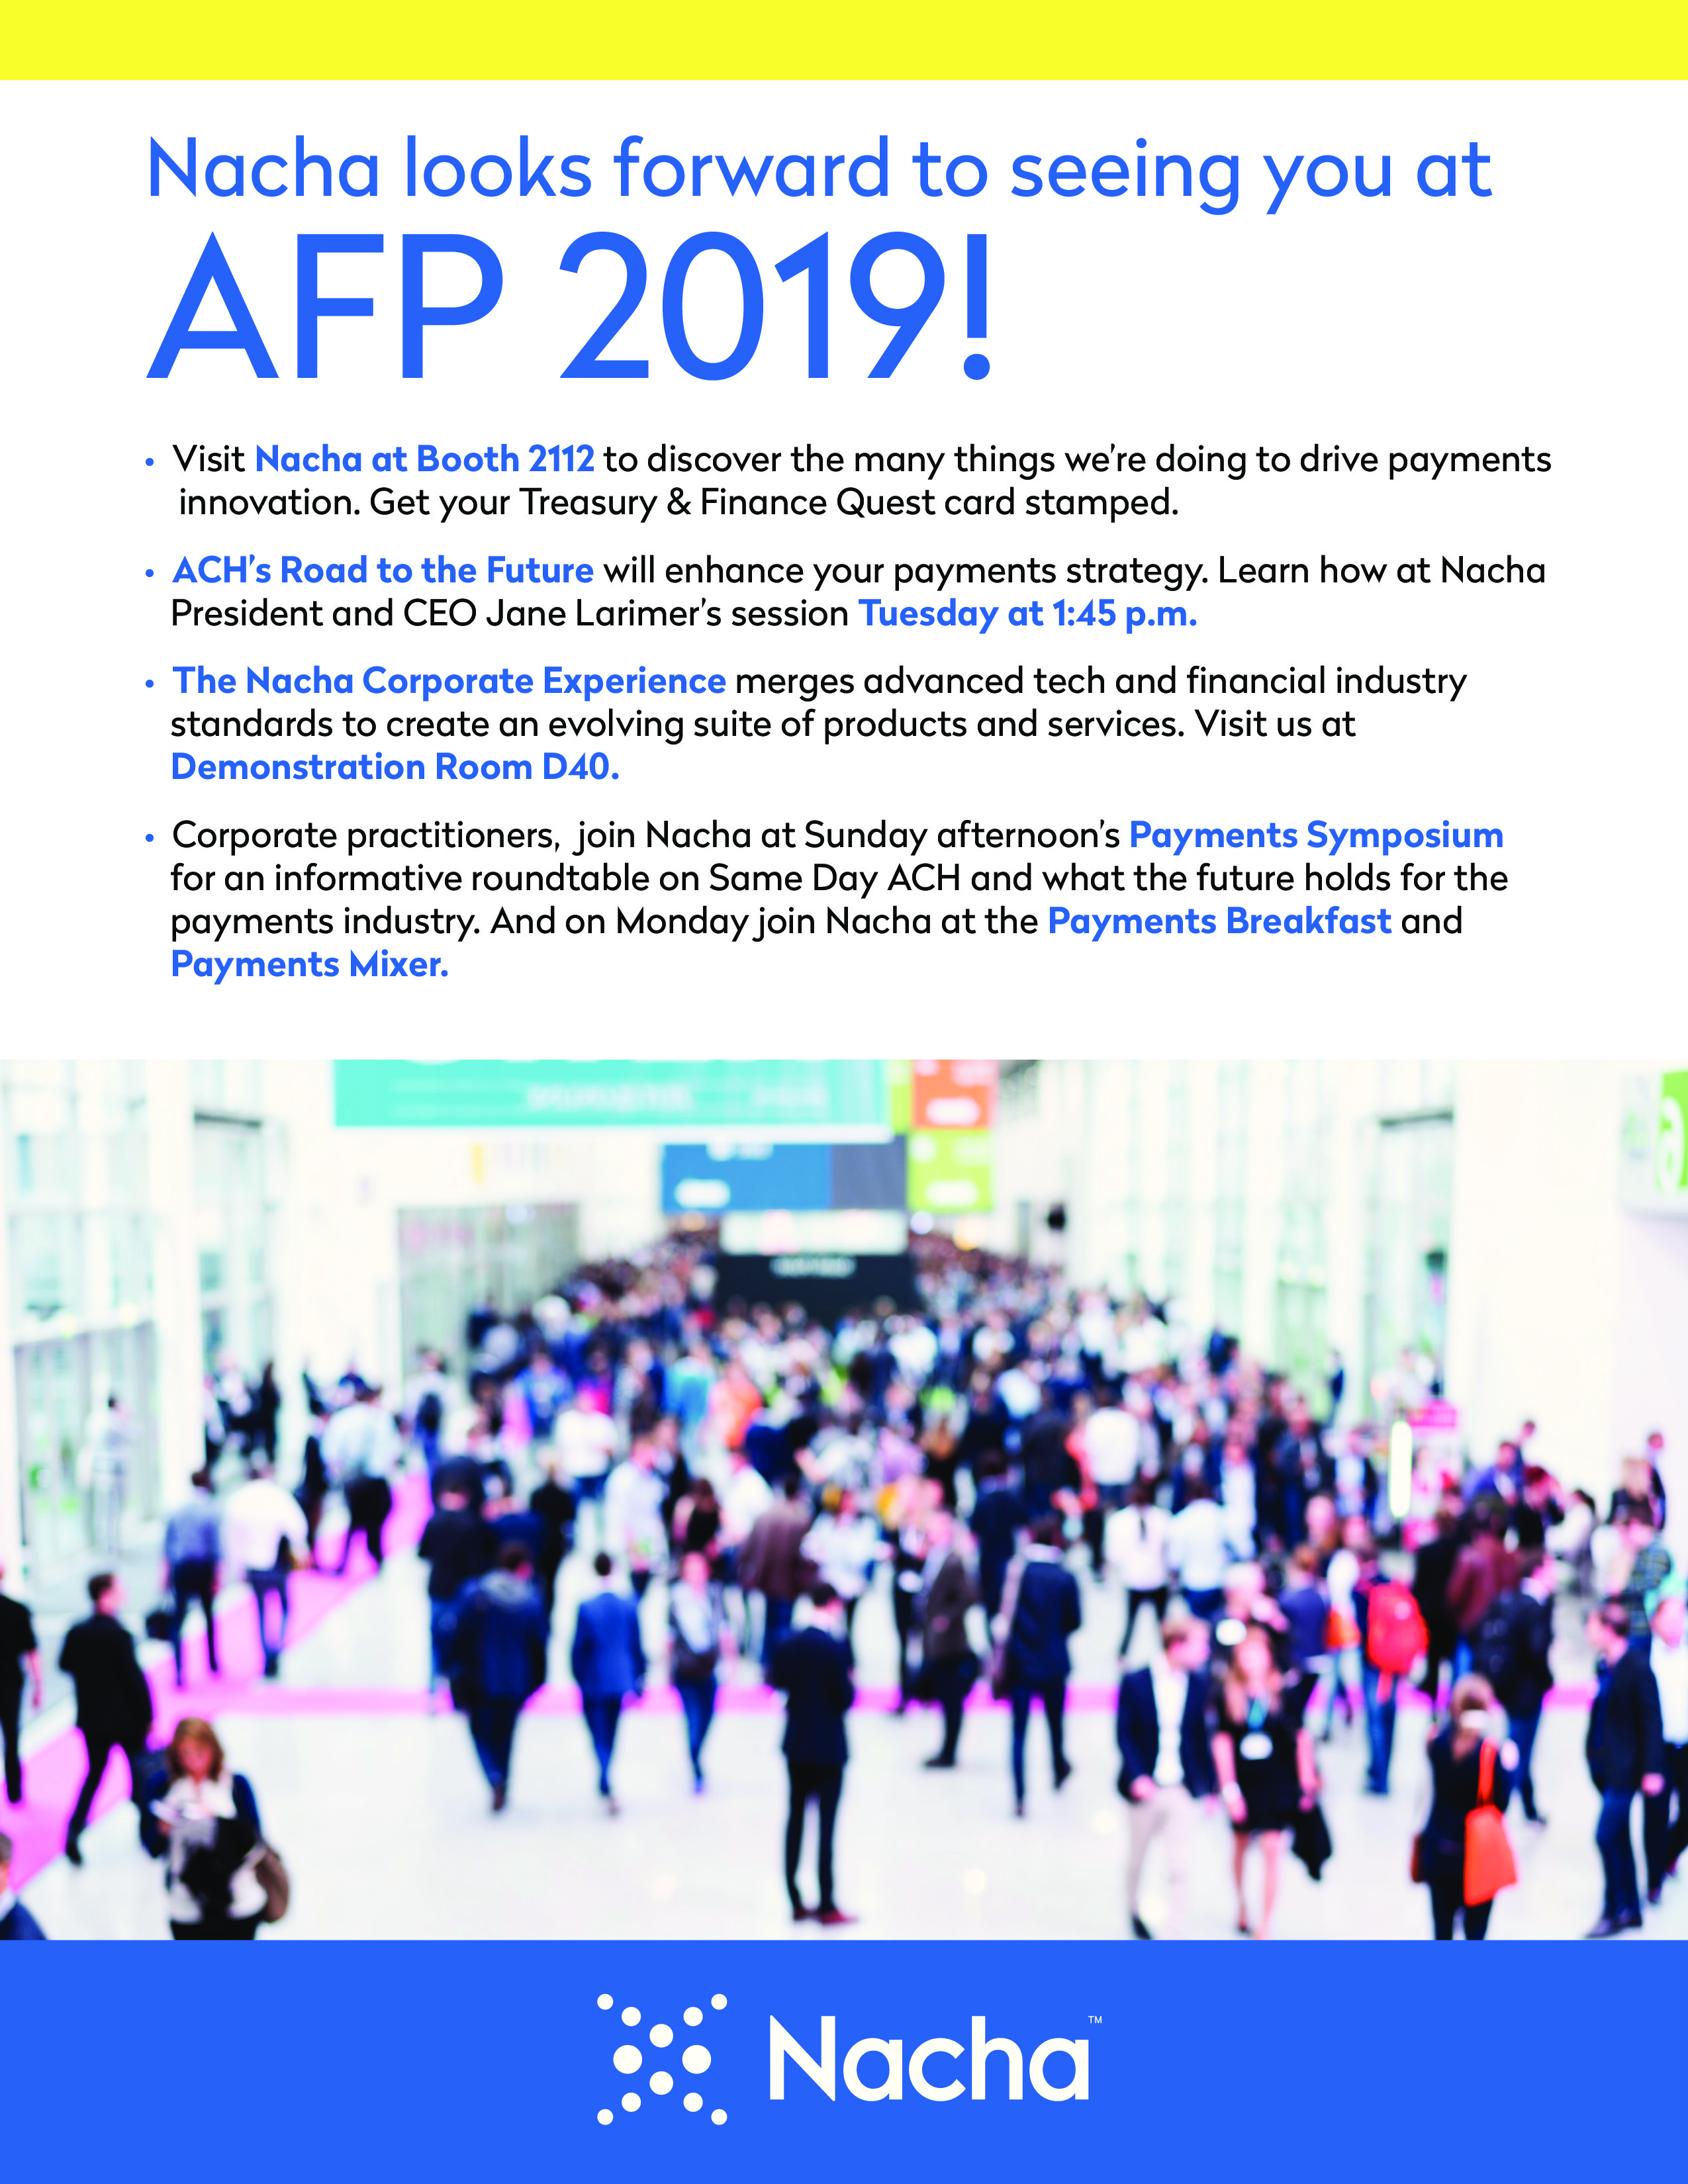 image of pdf describing what nacha is doing at afp 2019